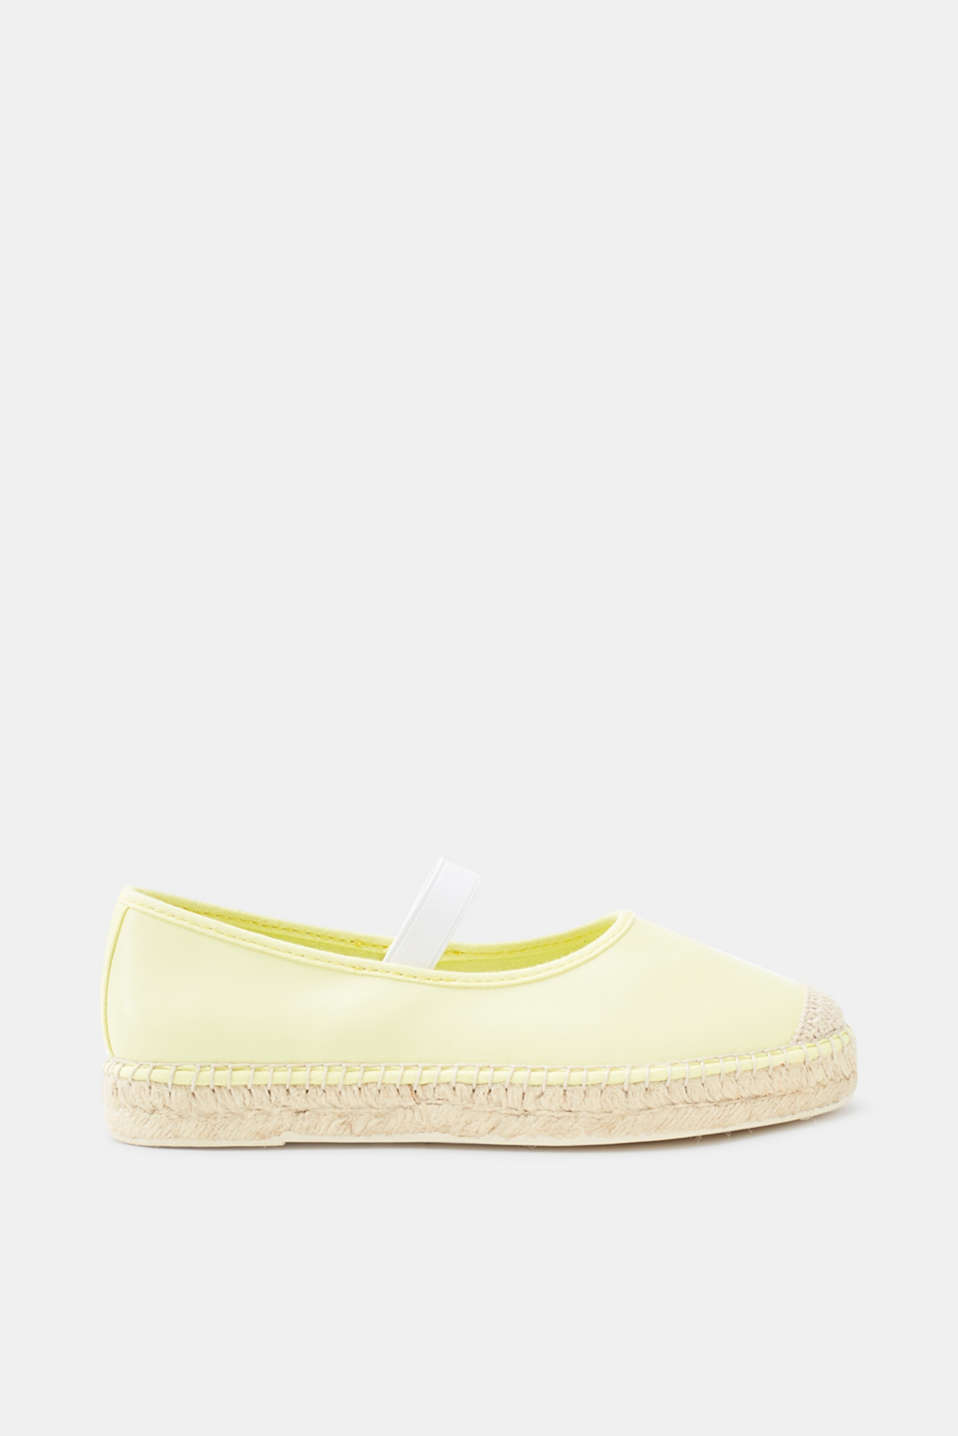 Esprit - Slip-on espadrilles in a smooth faux leather